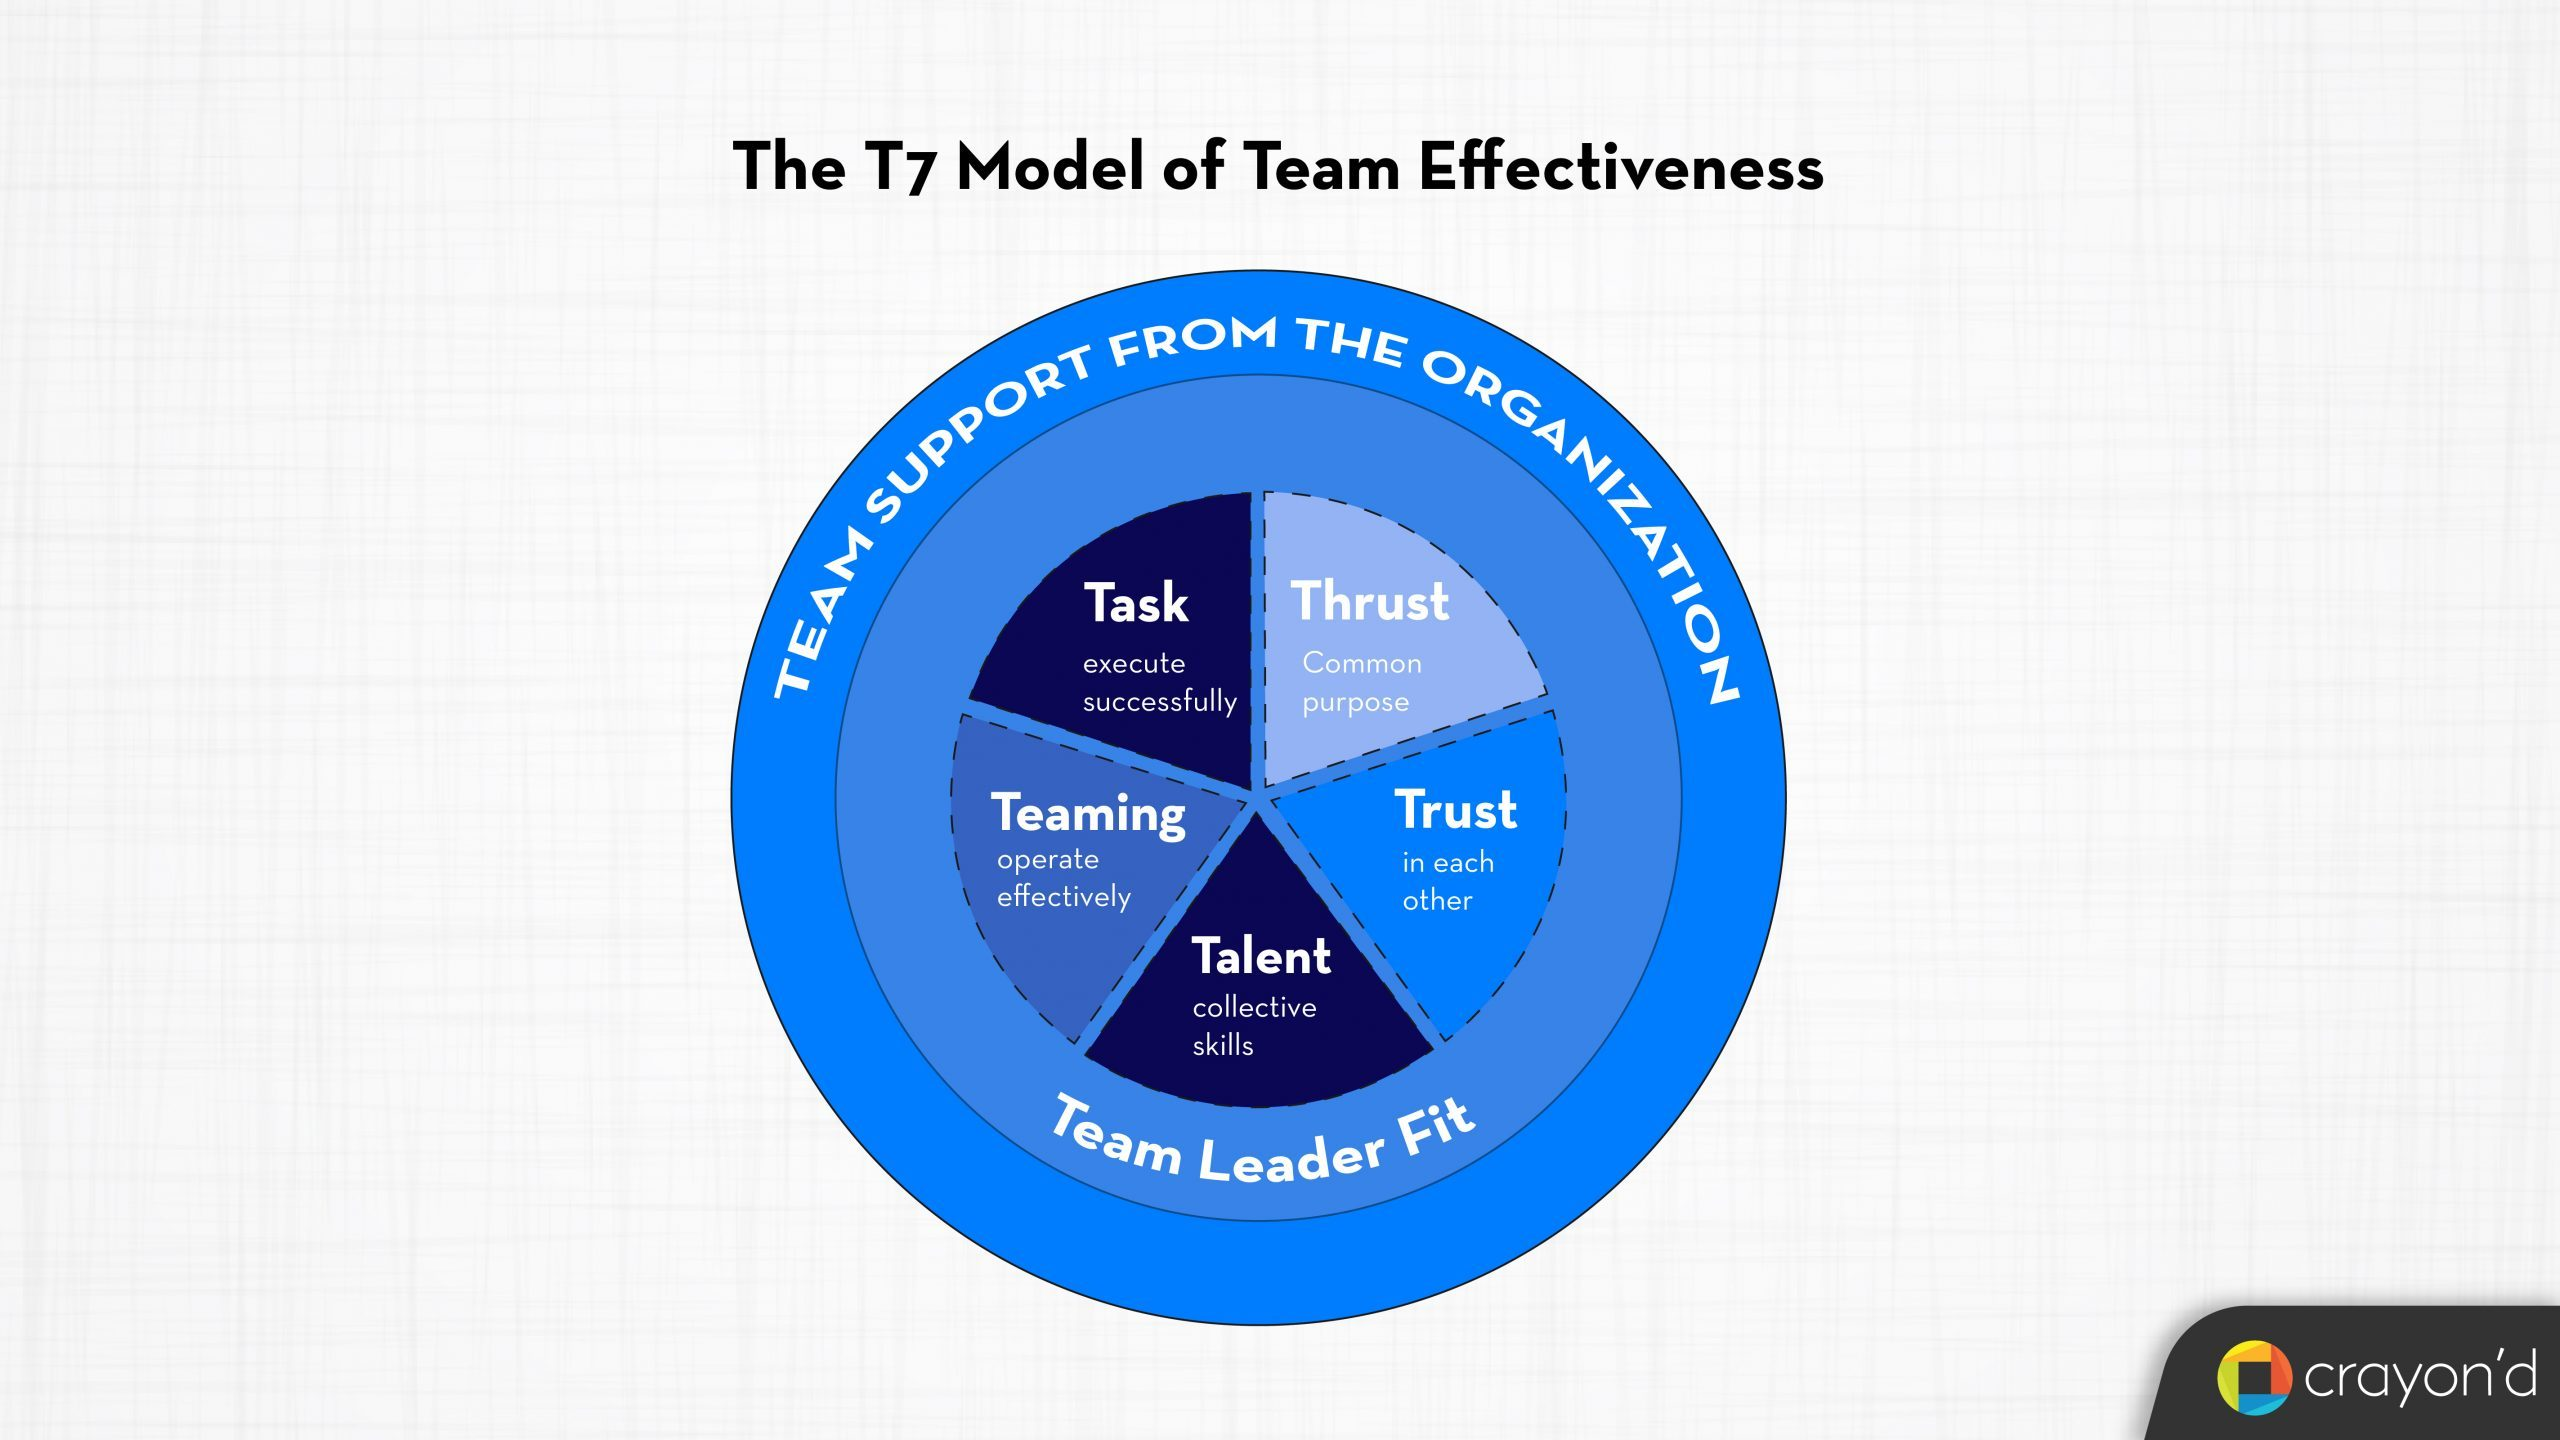 T7 Model of Team Effectiveness